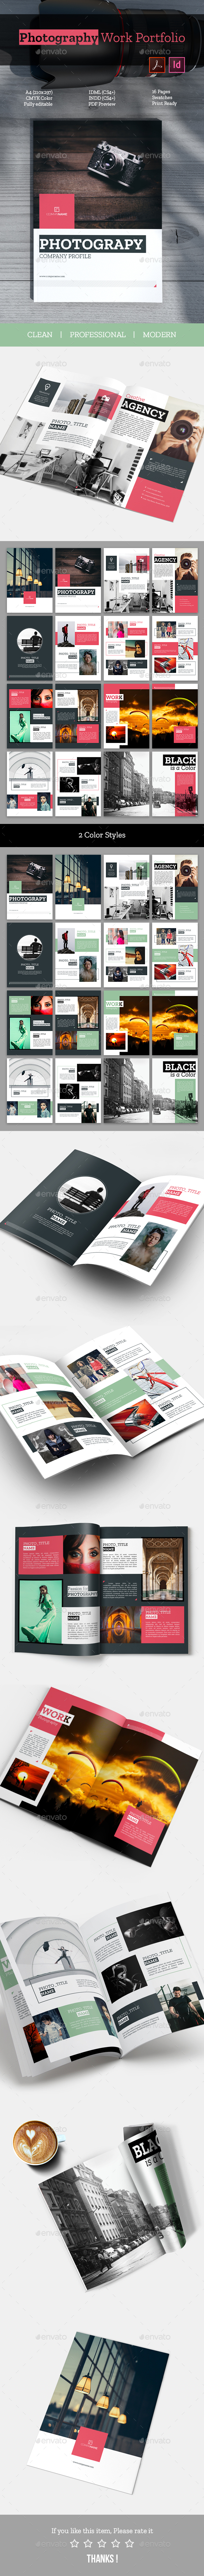 GraphicRiver Photography Work Portfolio 20792249